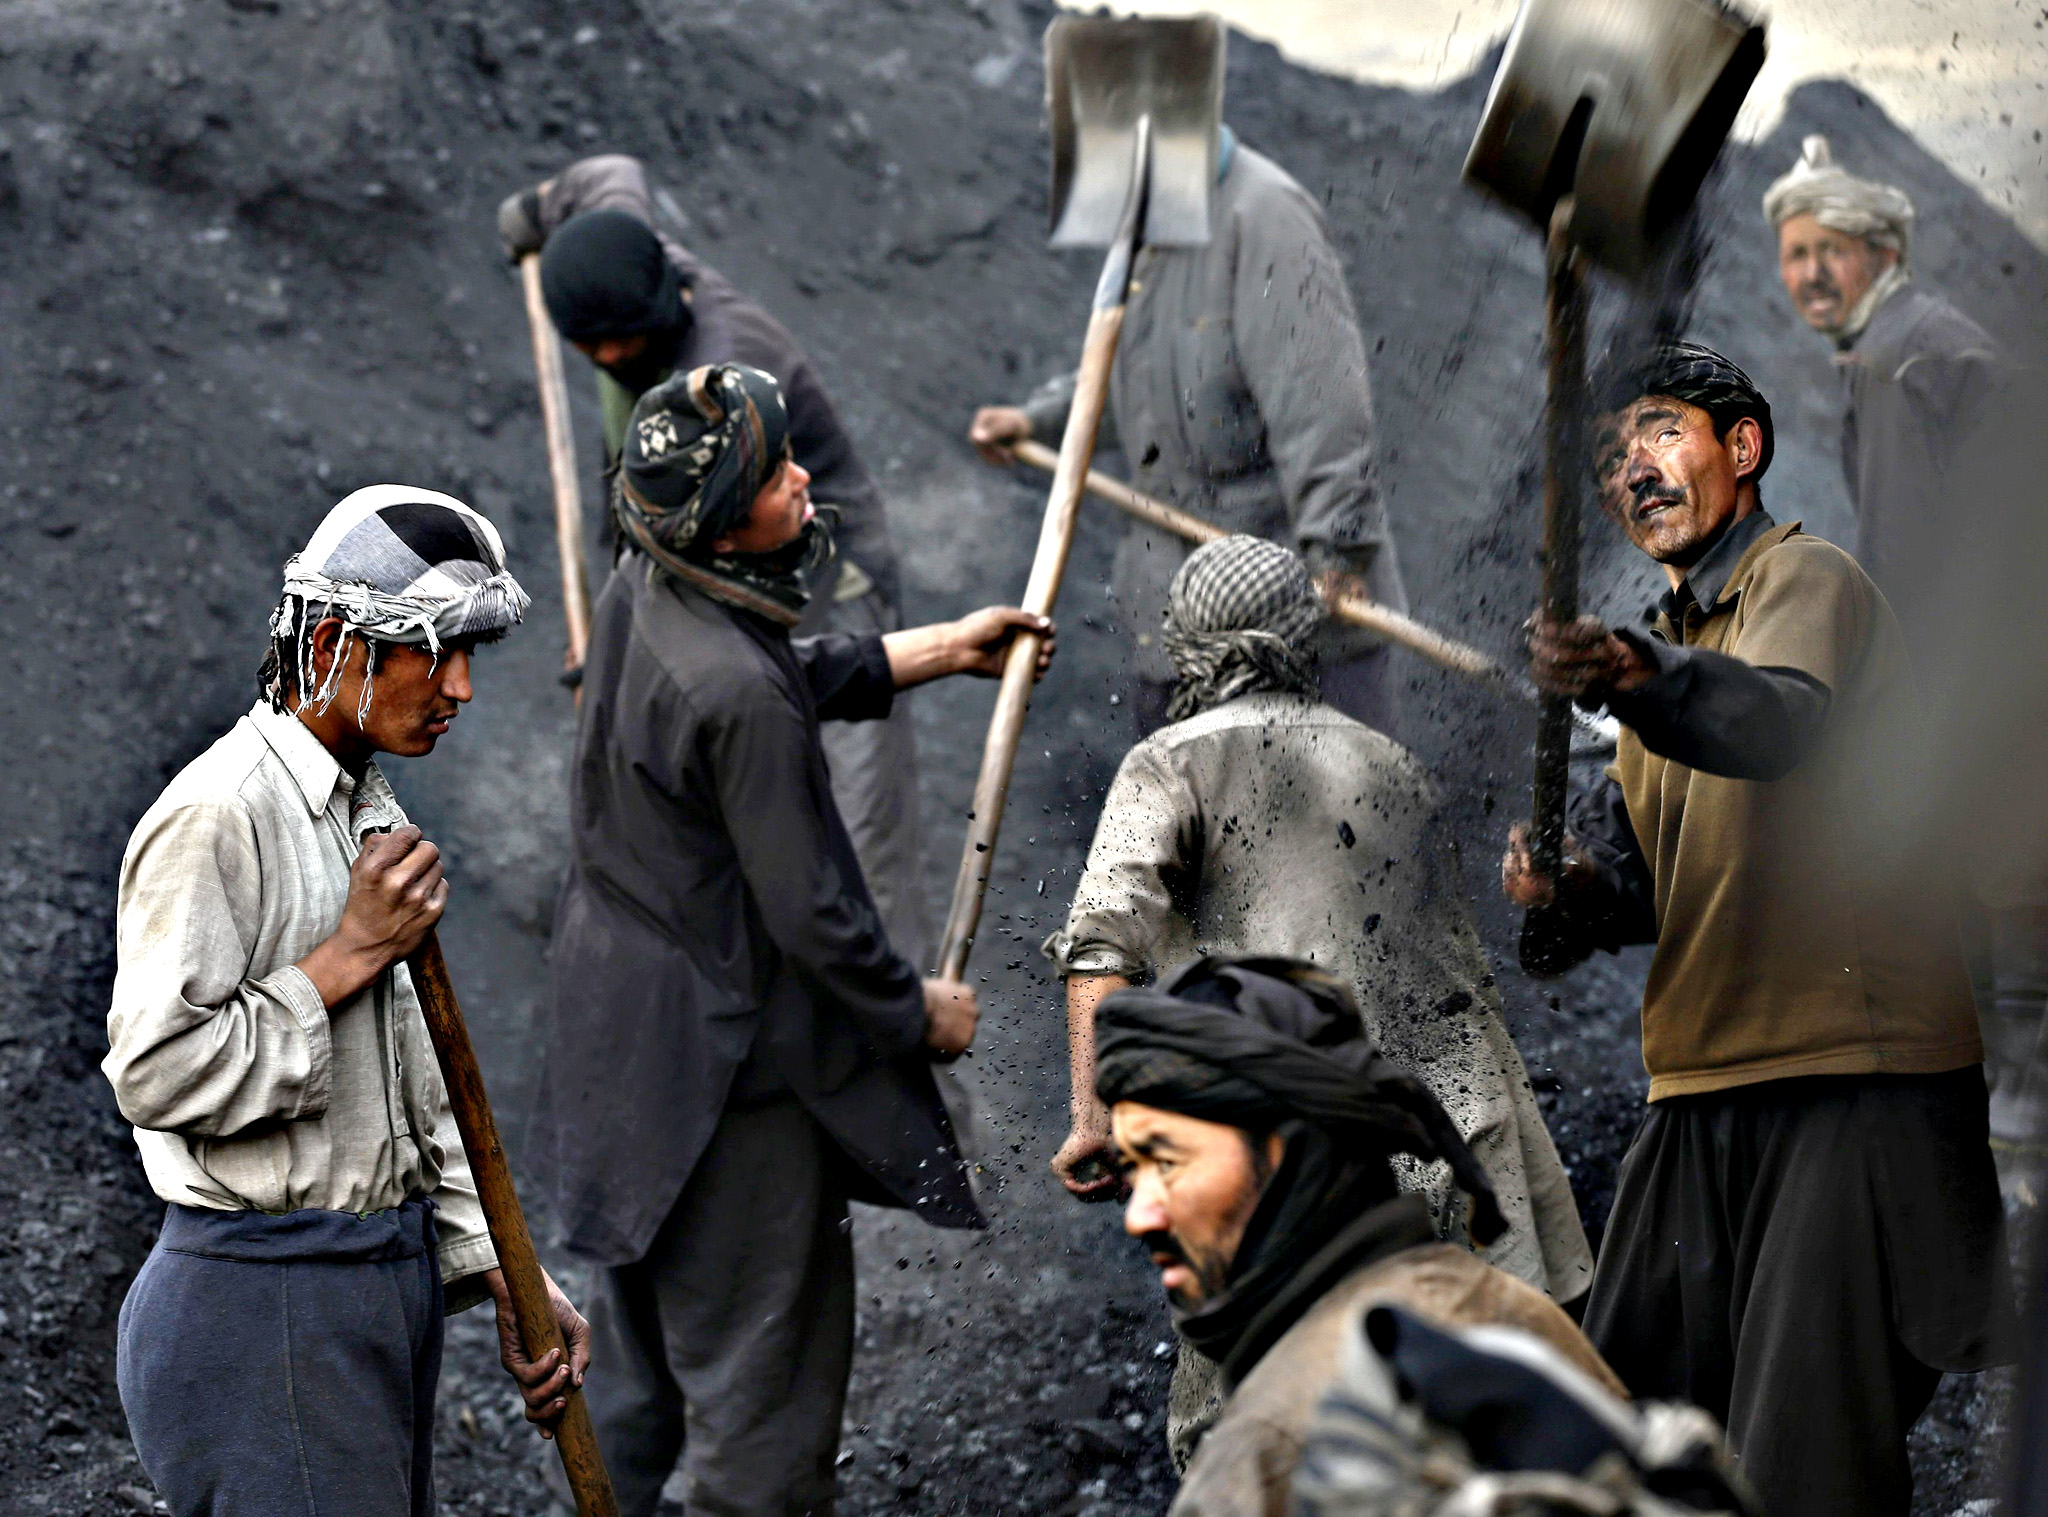 Labourers shovel coal onto a truck at a coal dump site outside Kabul January 19, 2015. Each labourer earns an average of $10 per working day, with most of them coming come from the northern provinces, leaving their families behind to find work in the capital.